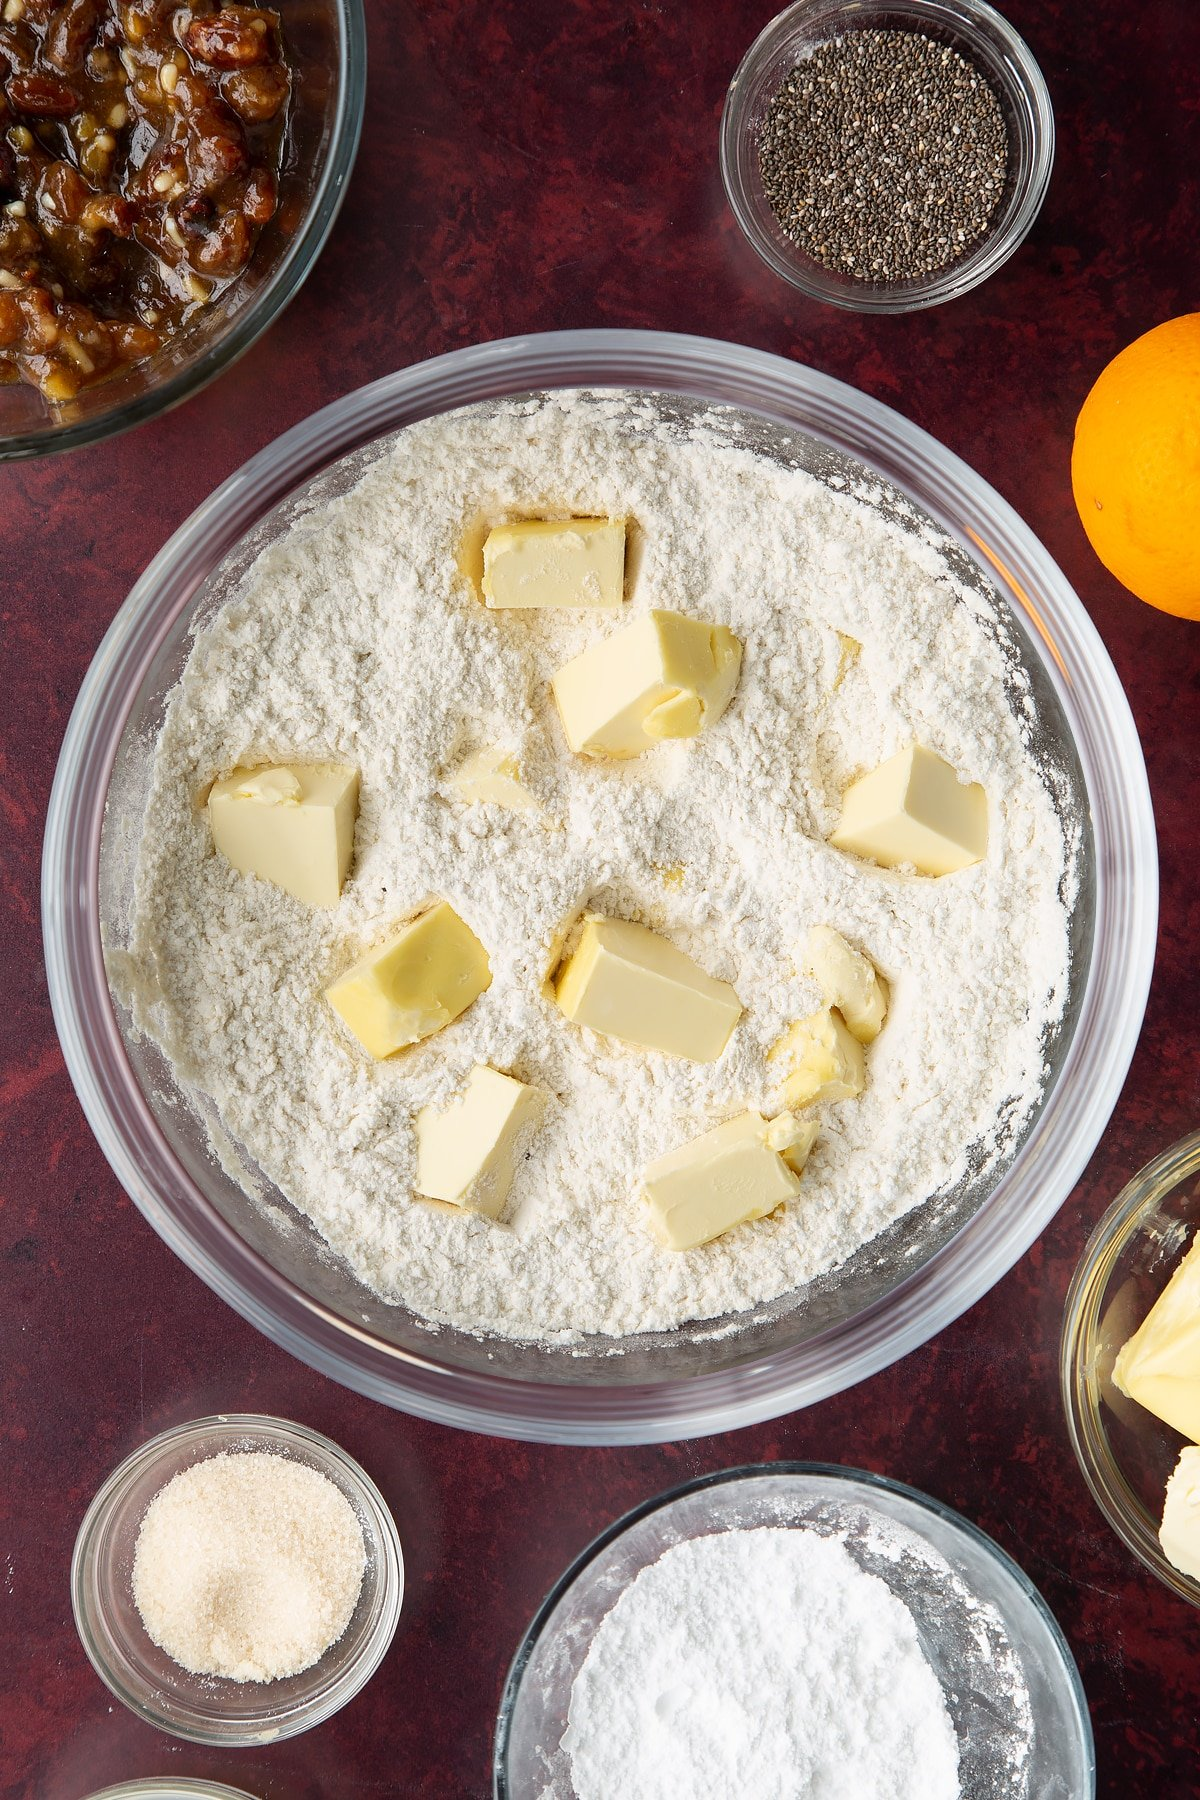 Flour and icing sugar mixed together in a bowl with cubes of vegan butter. Ingredients to make a vegan mince pie recipe surround the bowl.